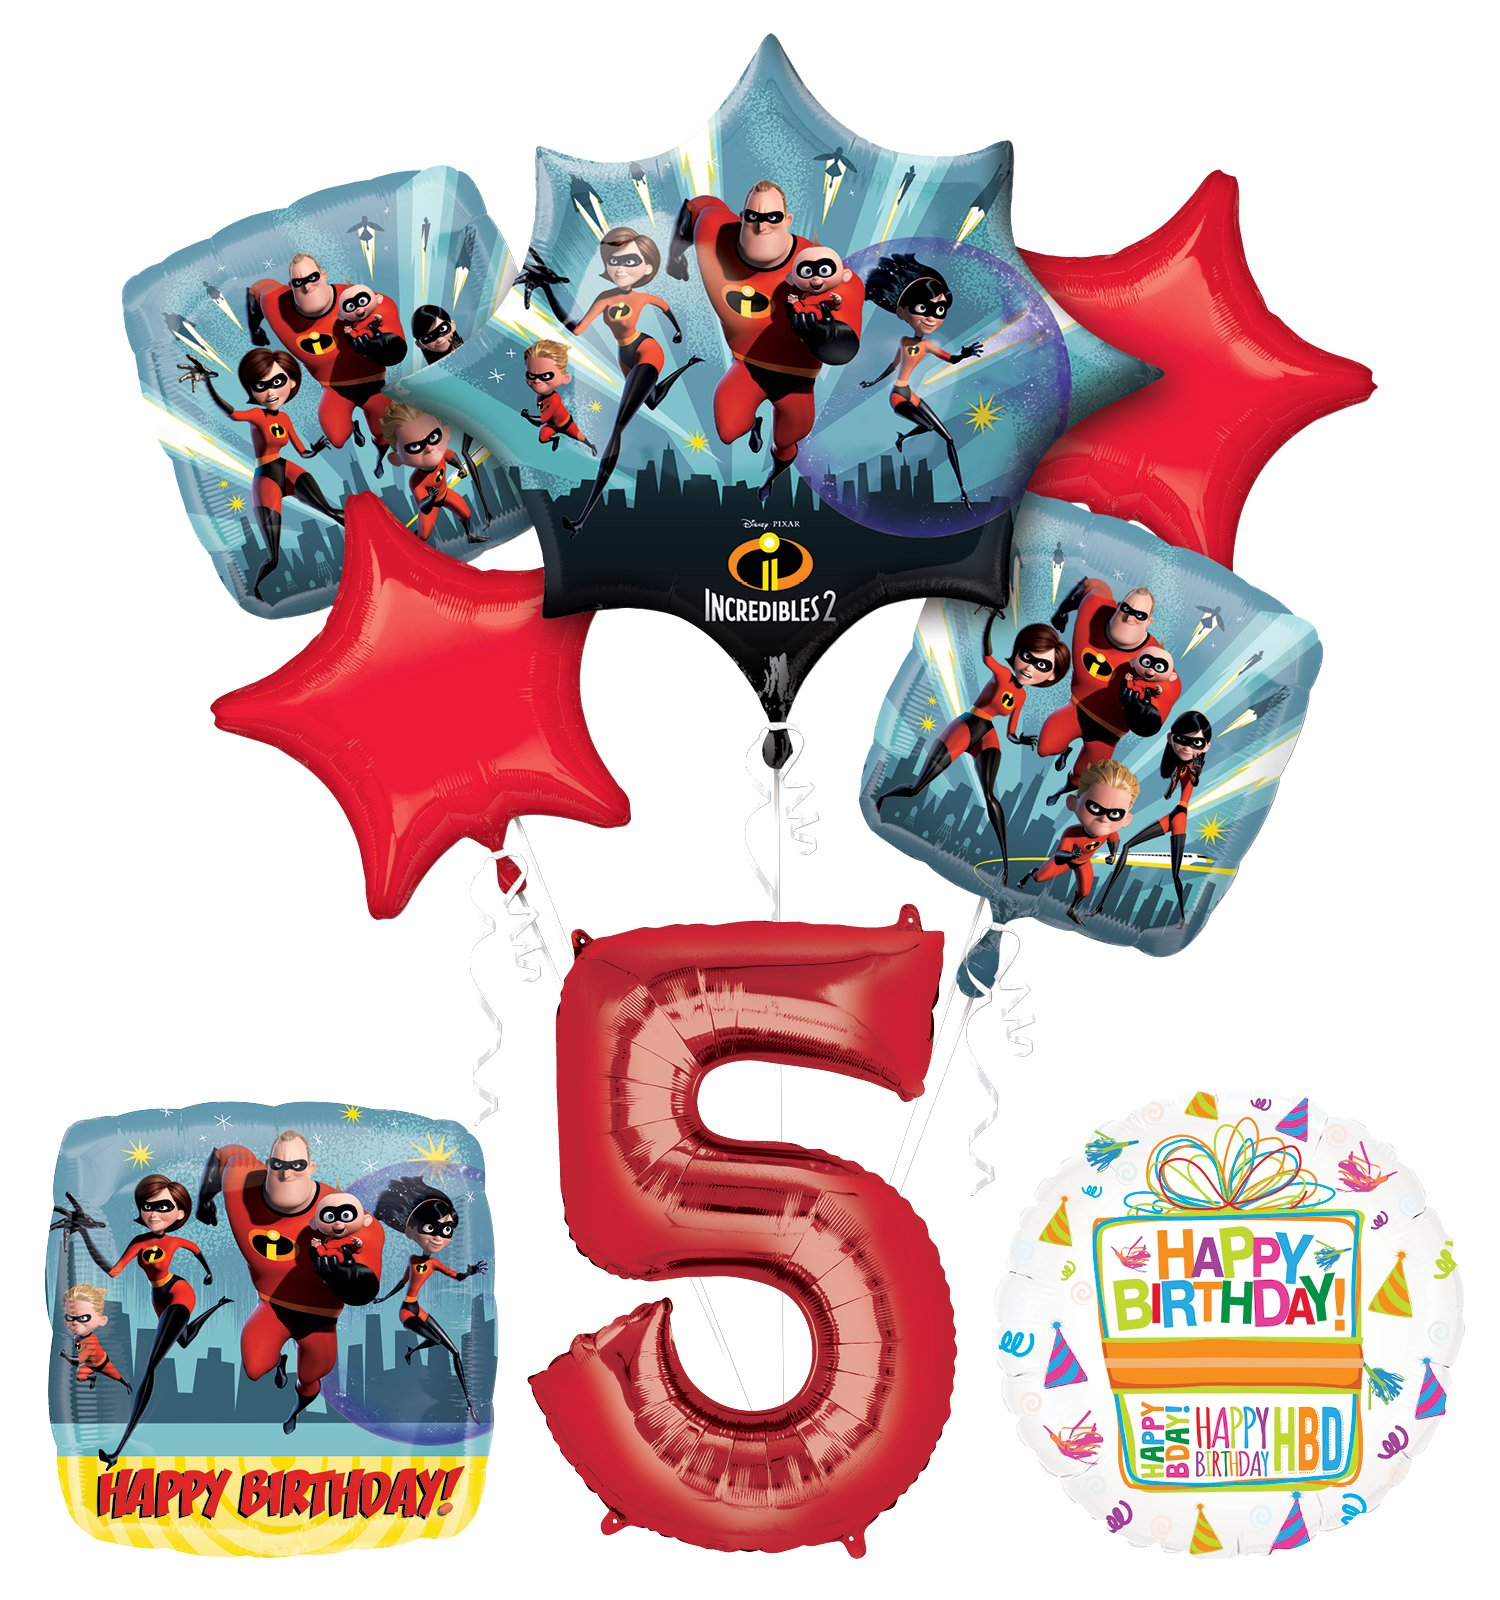 Incredibles 2 party supplies 5th Birthday Balloon Bouquet Decorations